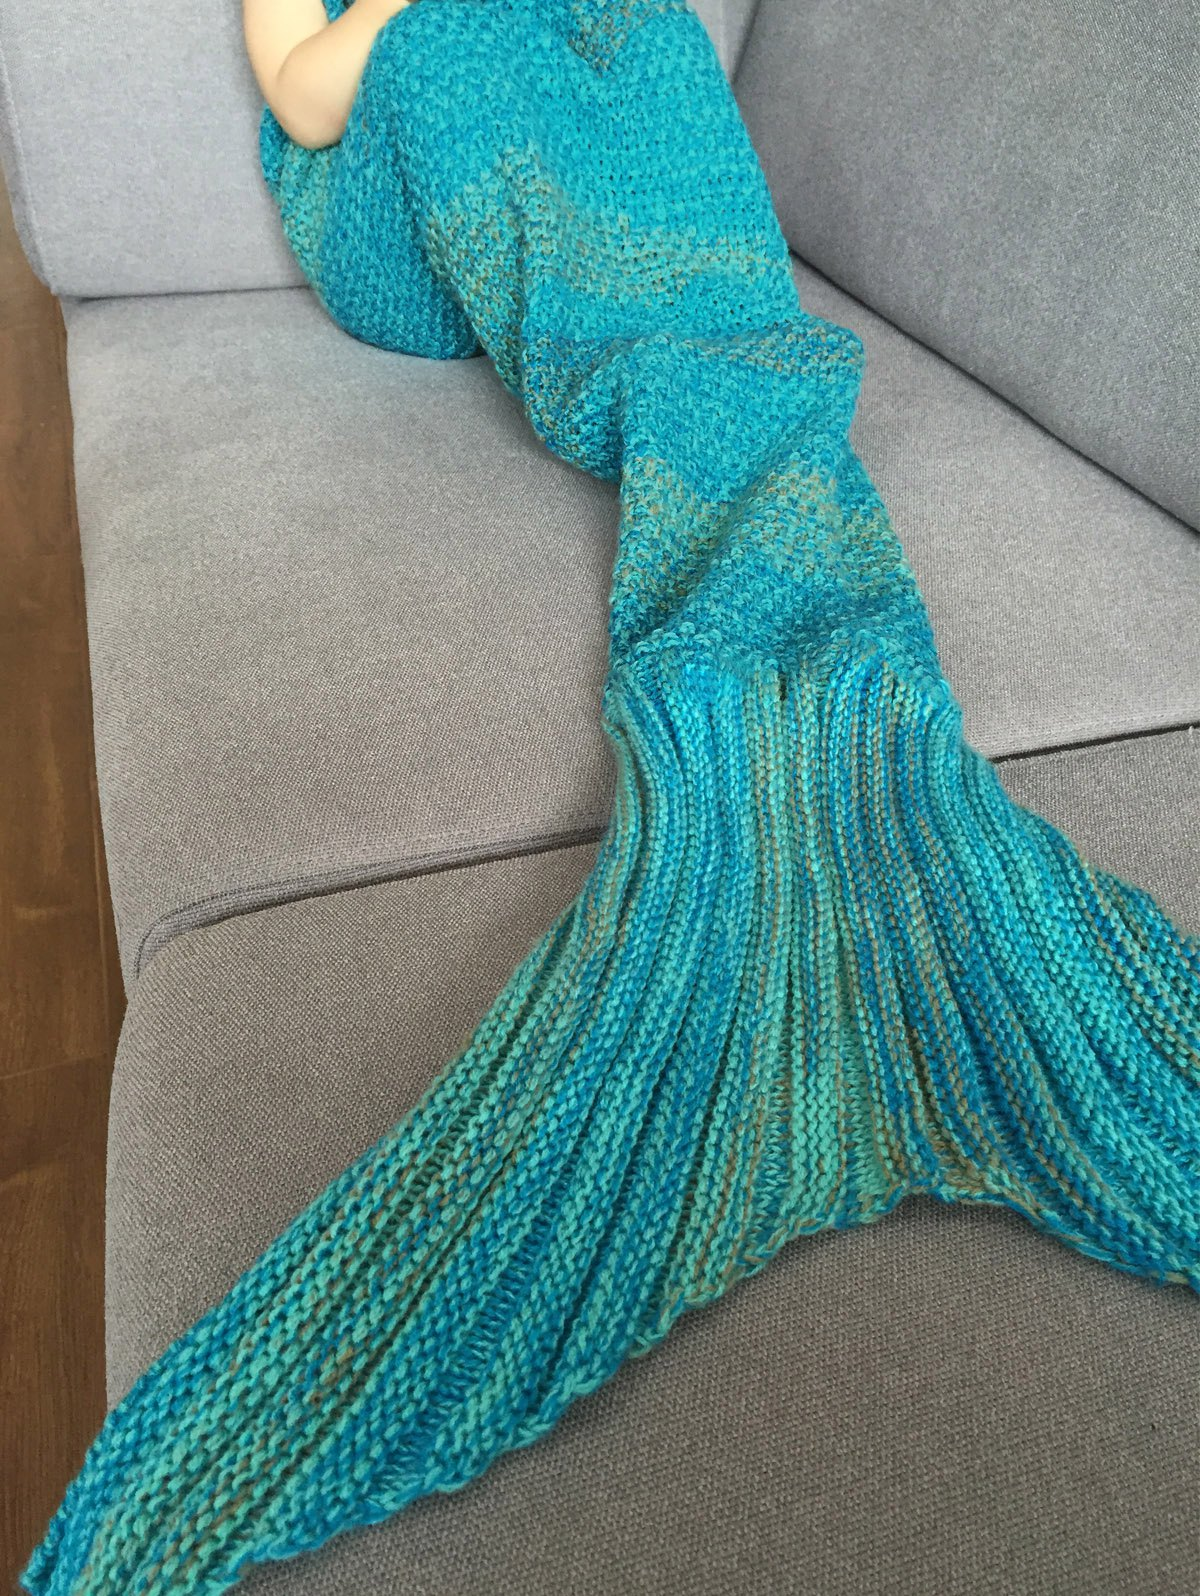 mermaid-blanket